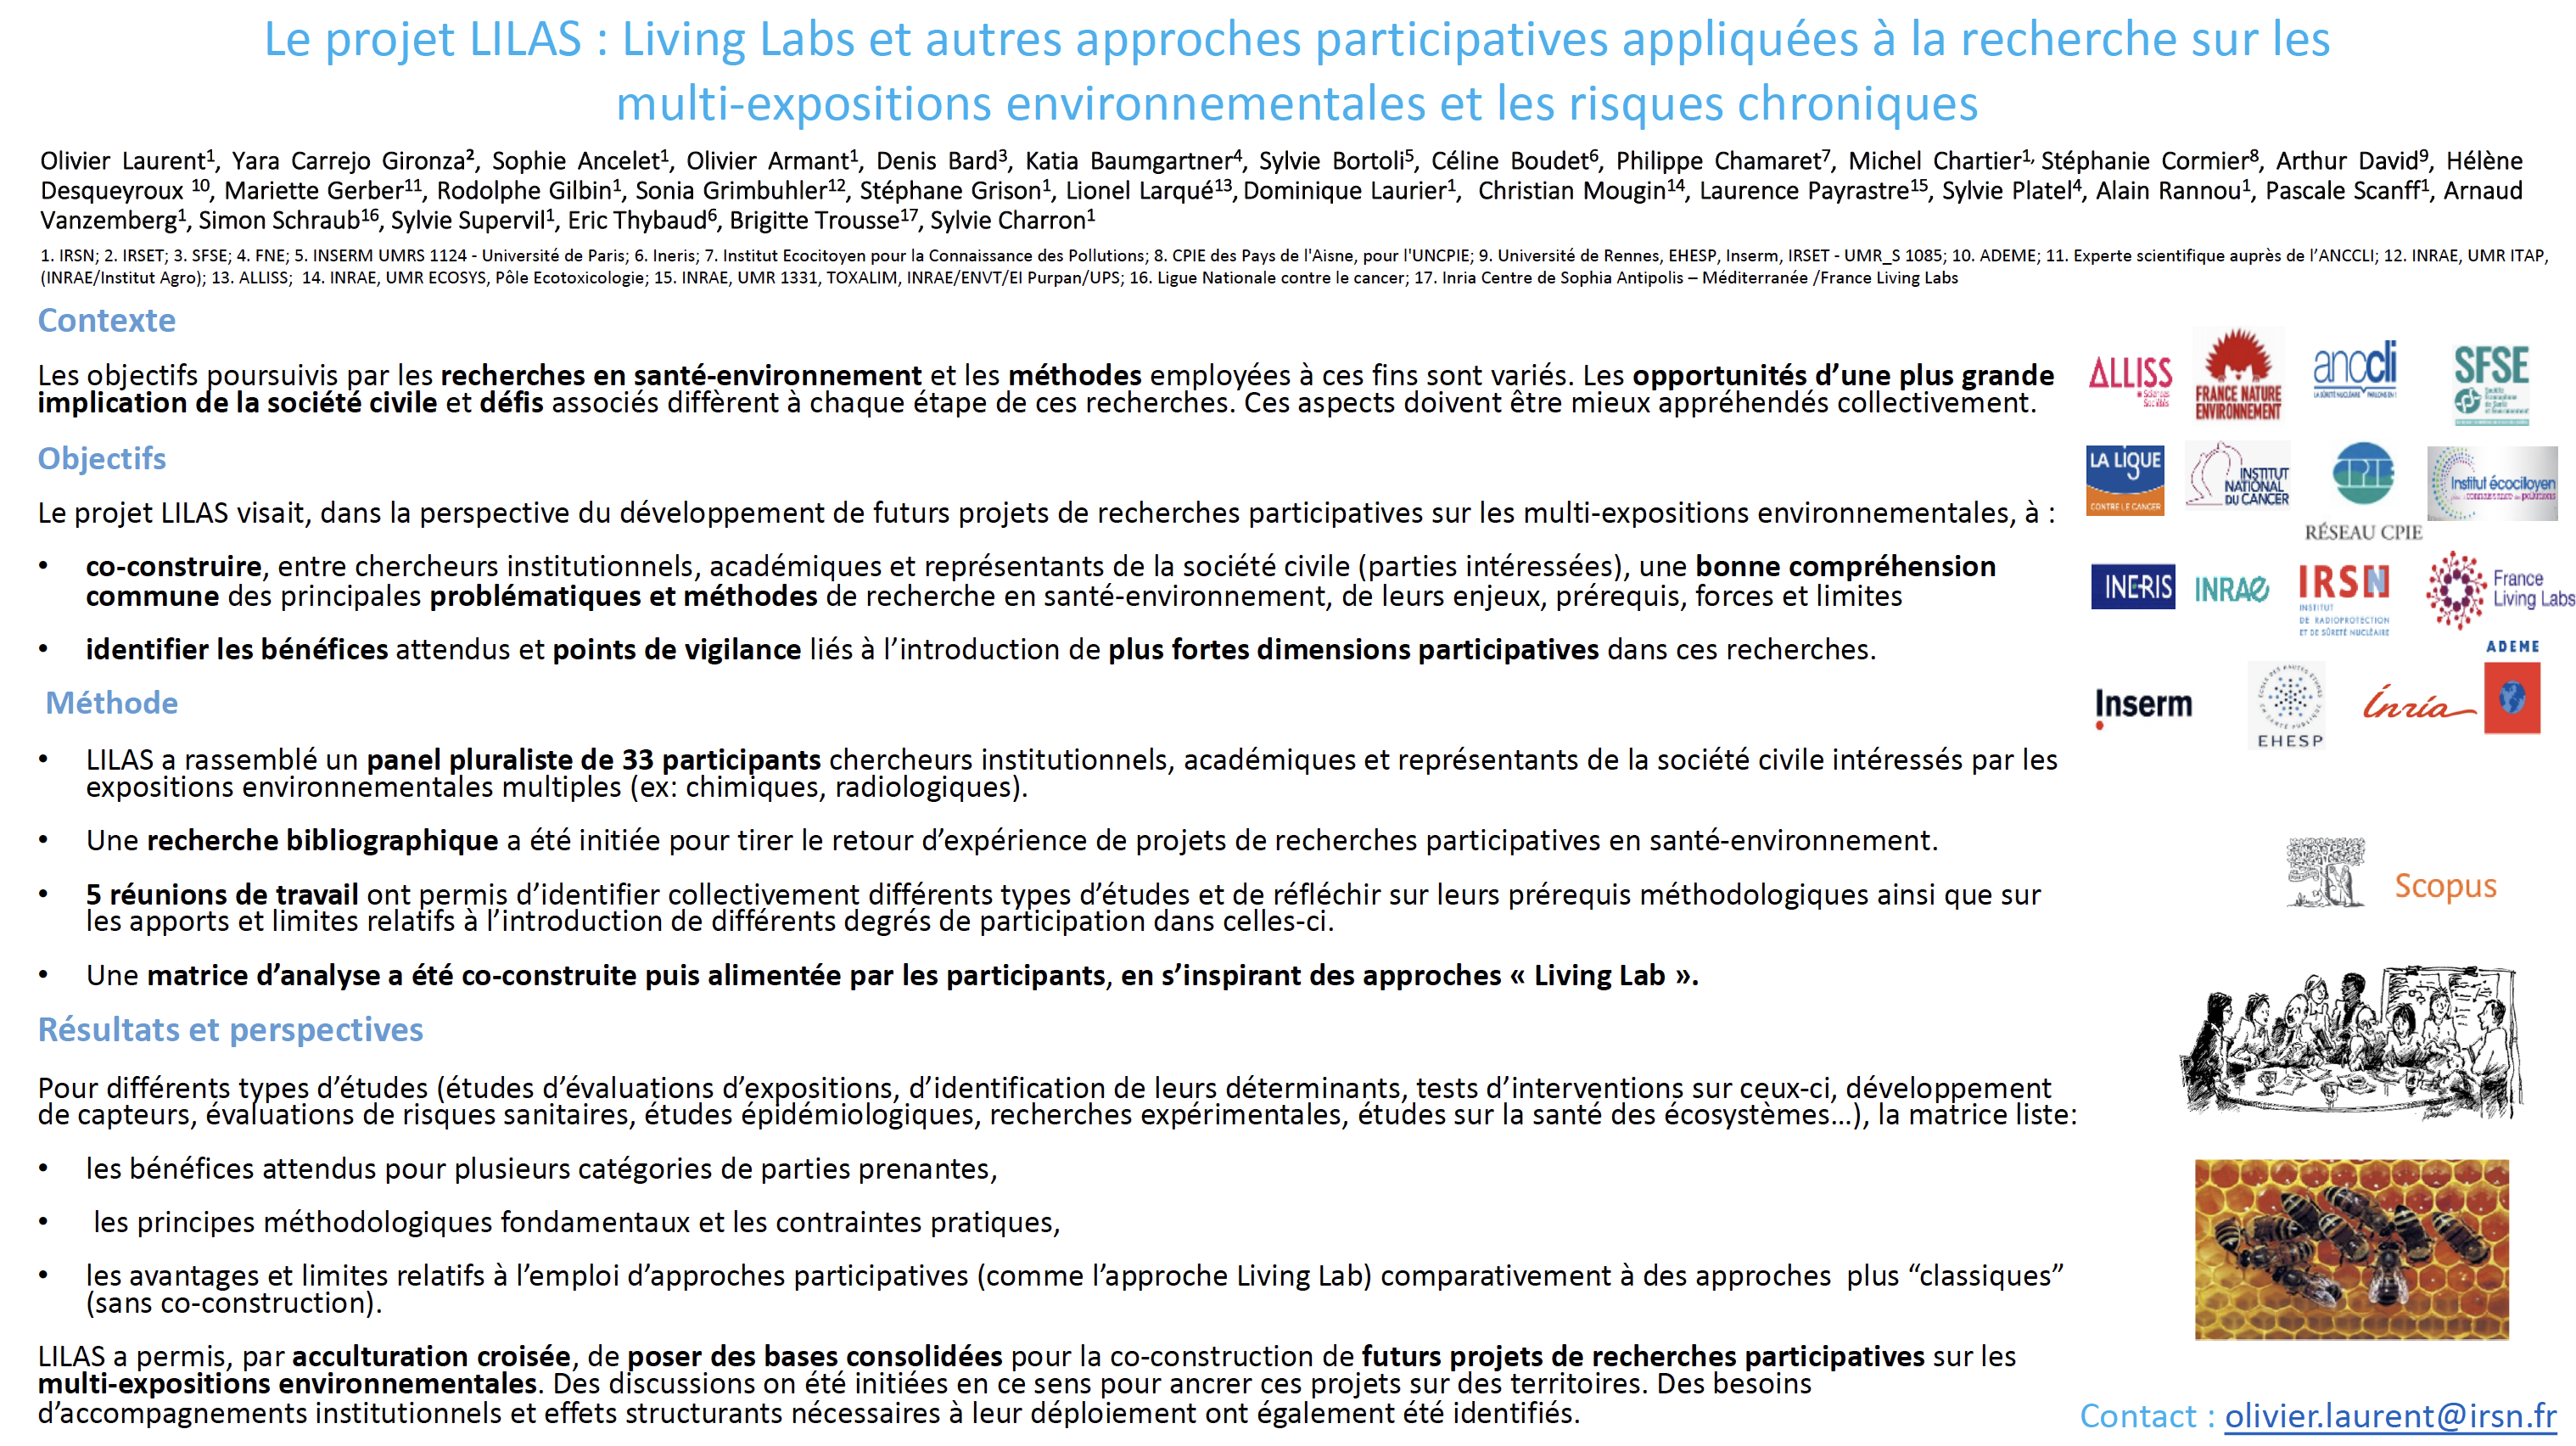 s4p4-olivier-laurent-lilas-rq0e9hkp.png